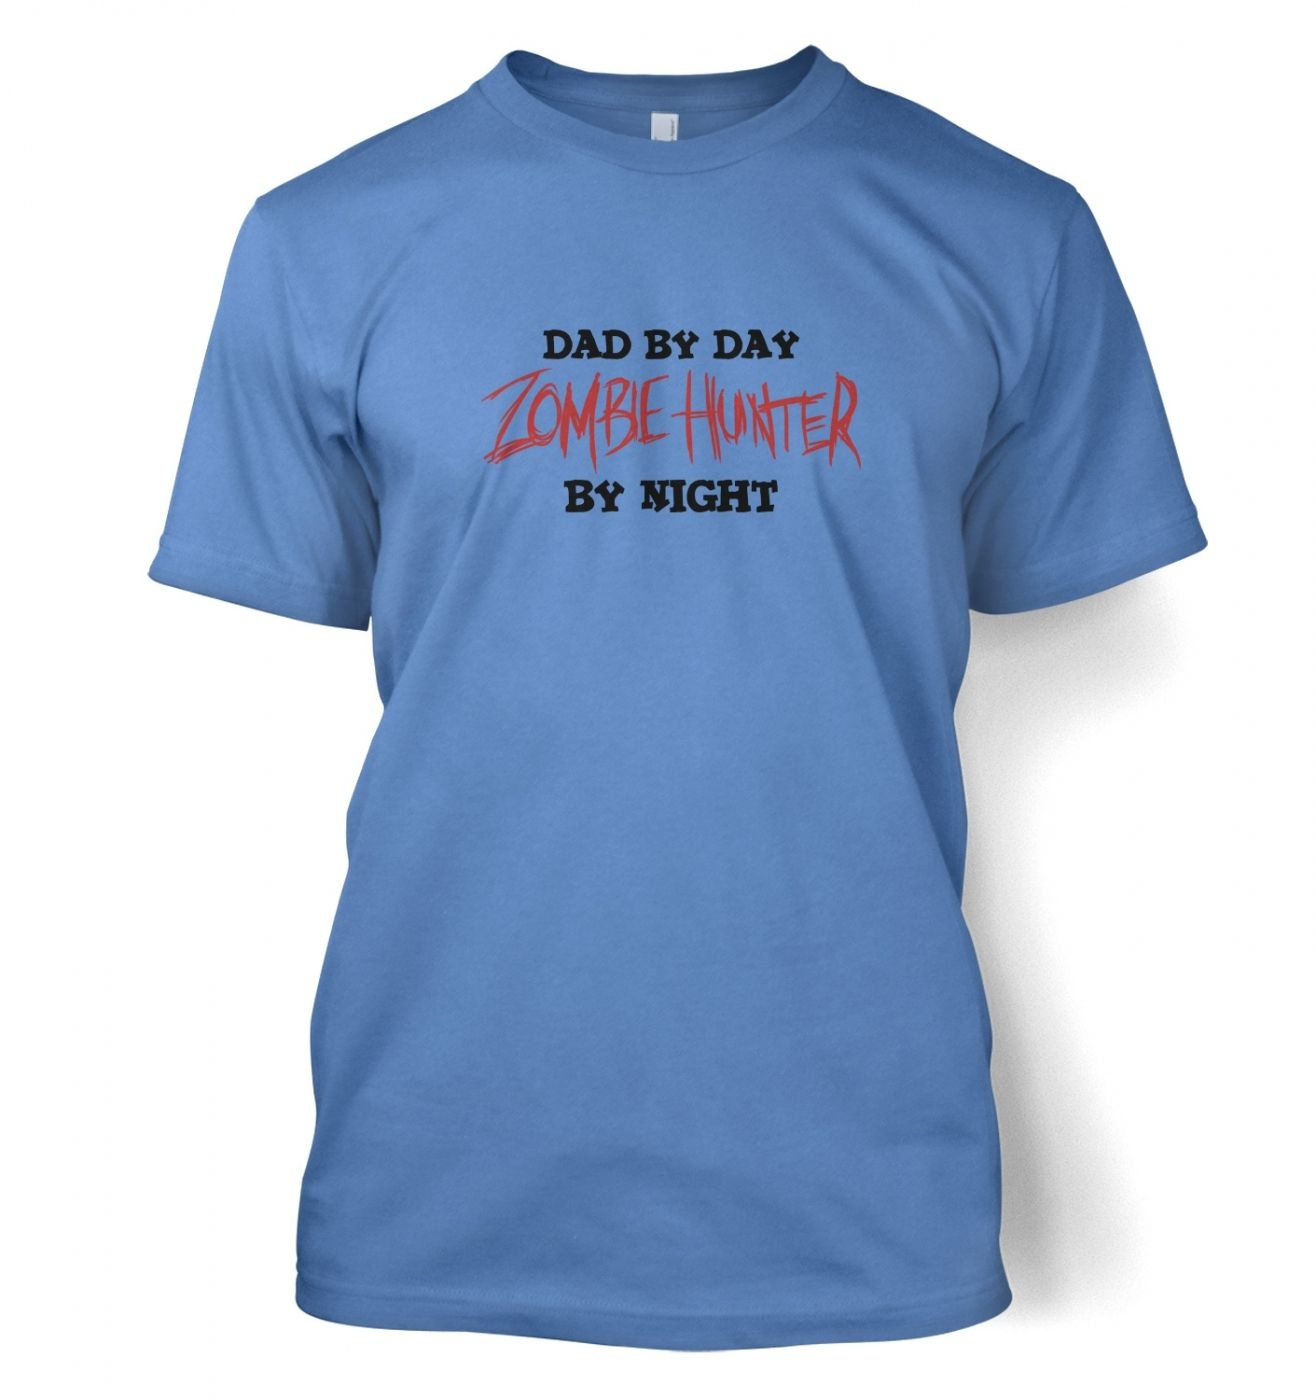 Dad By Day Zombie Hunter By Night men's t-shirt